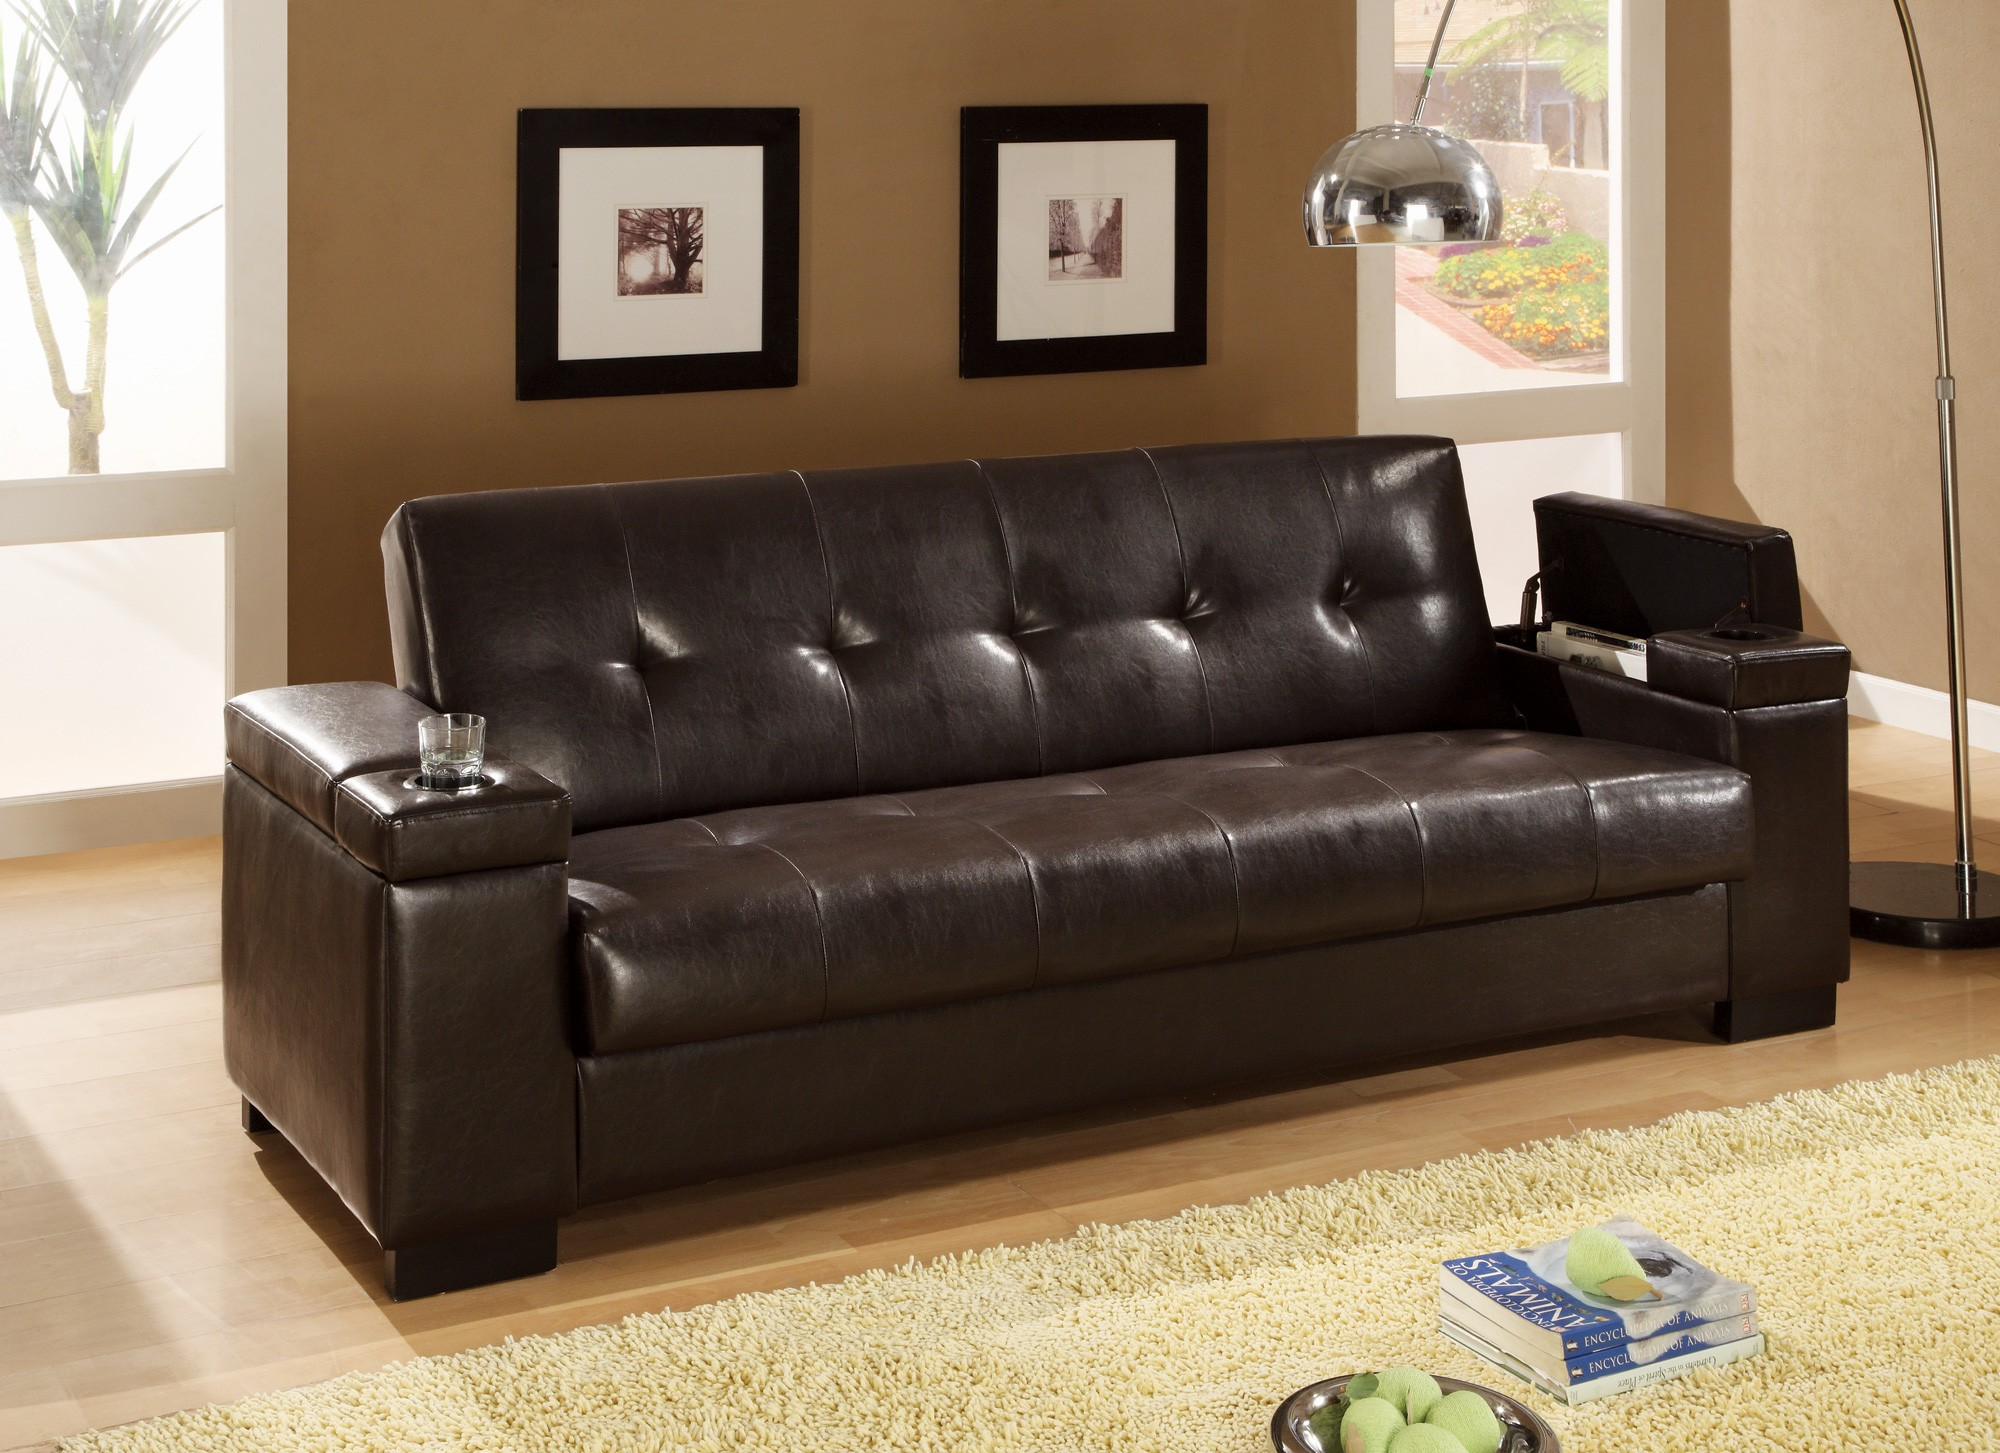 Faux leather convertible sofa sleeper with storage 300143 for Sofa with storage